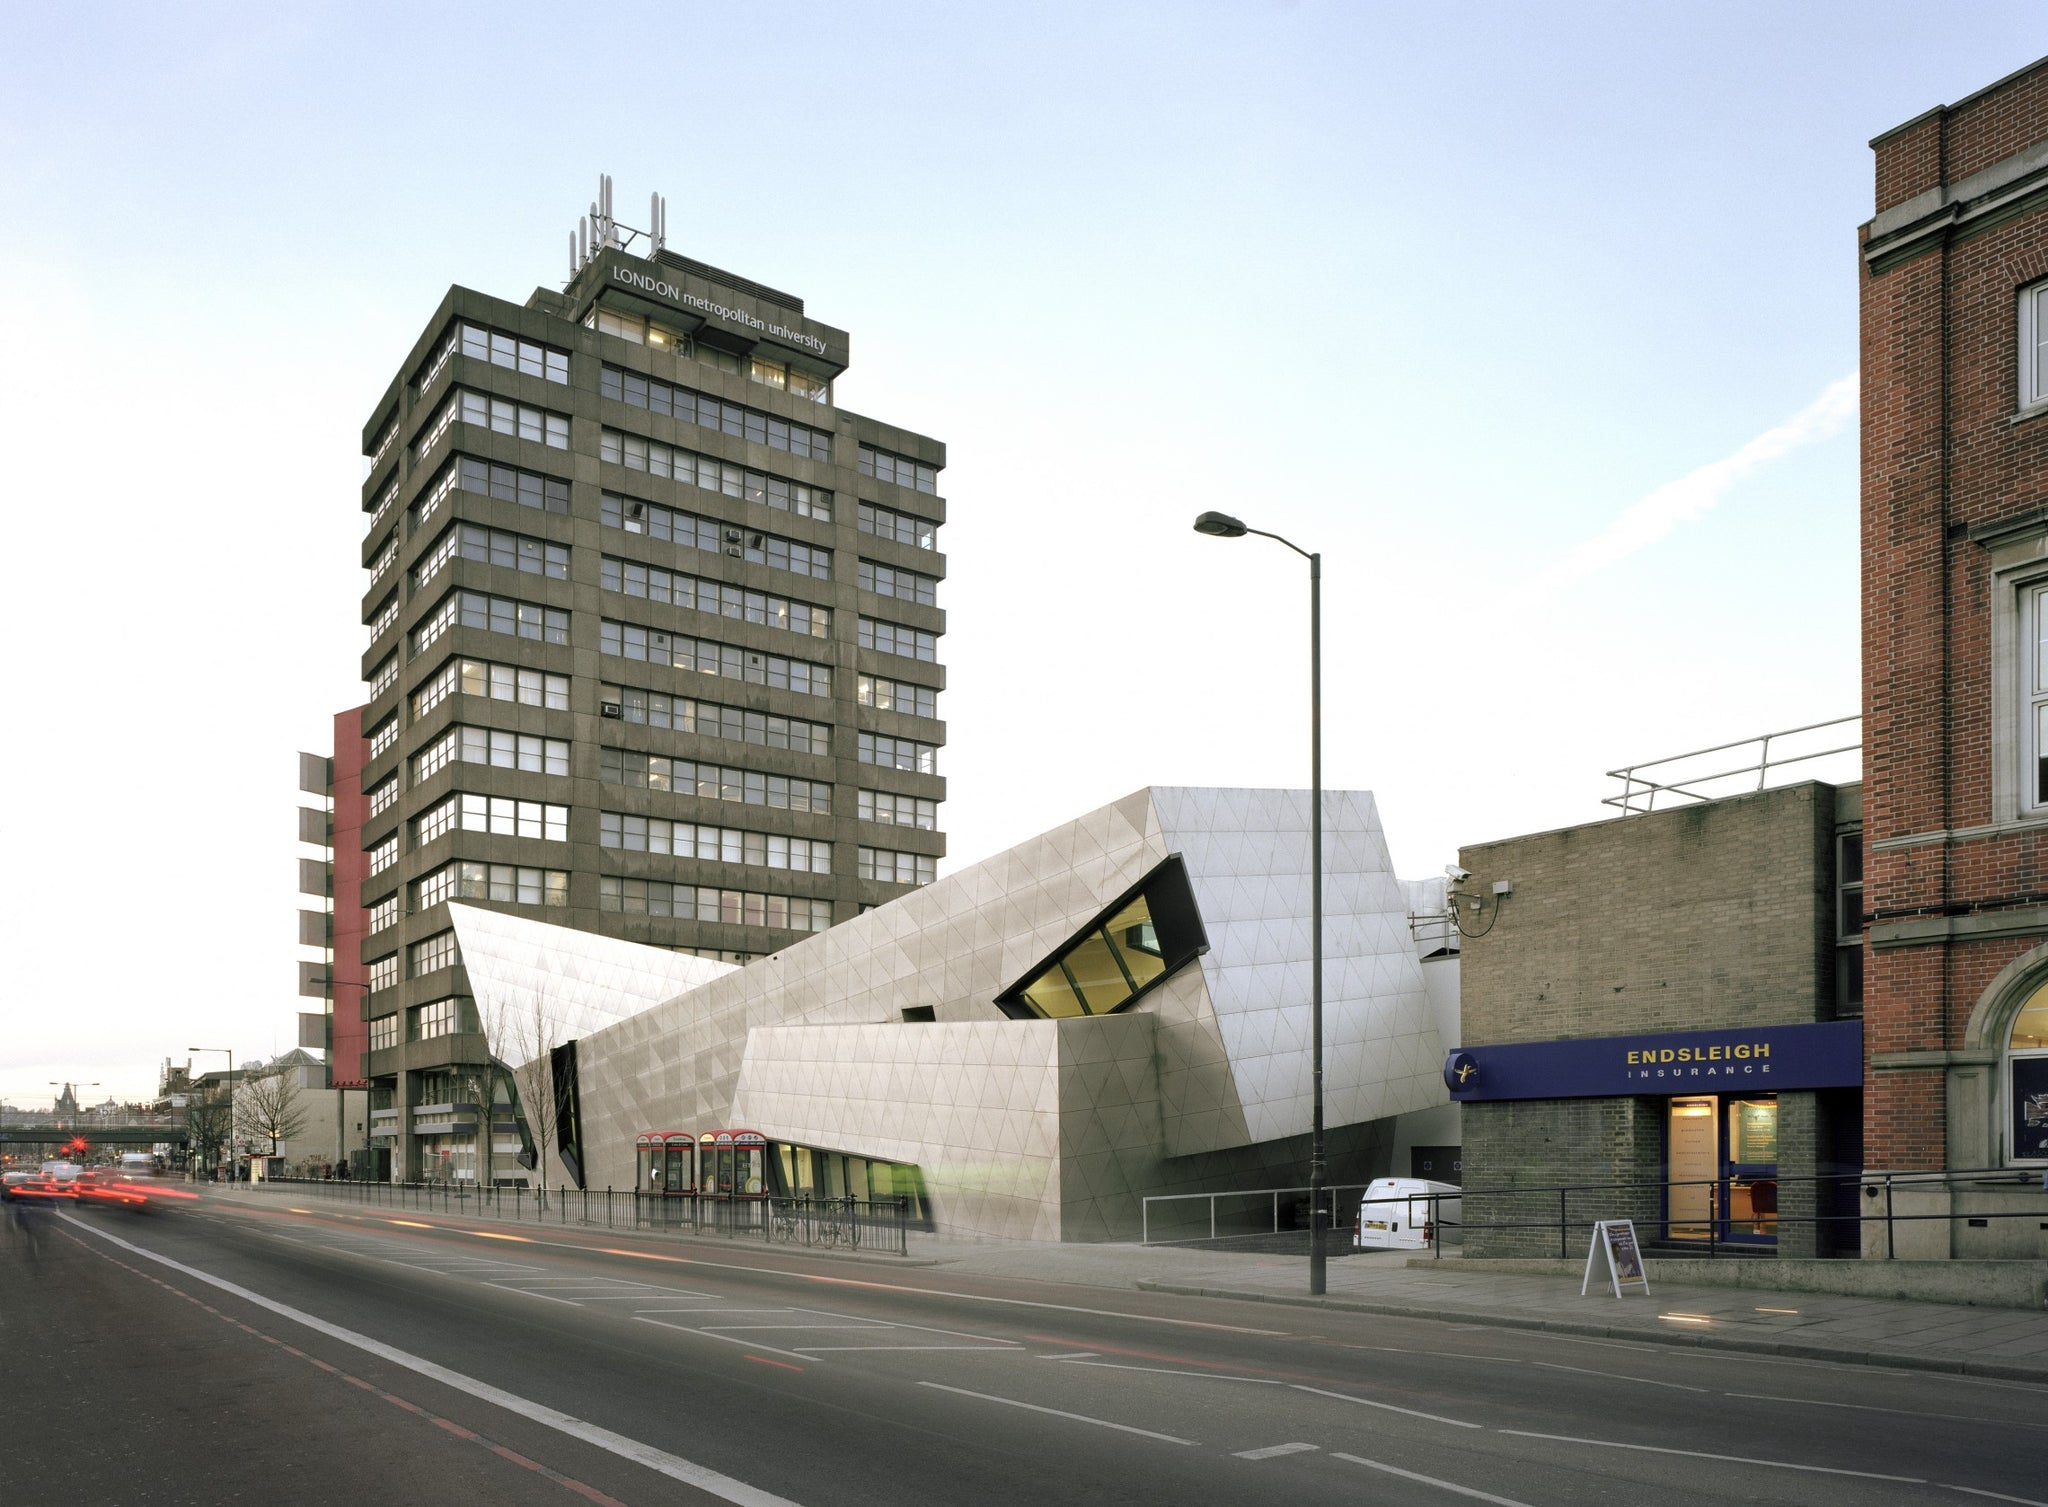 London Metropolitan University Graduate Centre by Daniel Libeskind